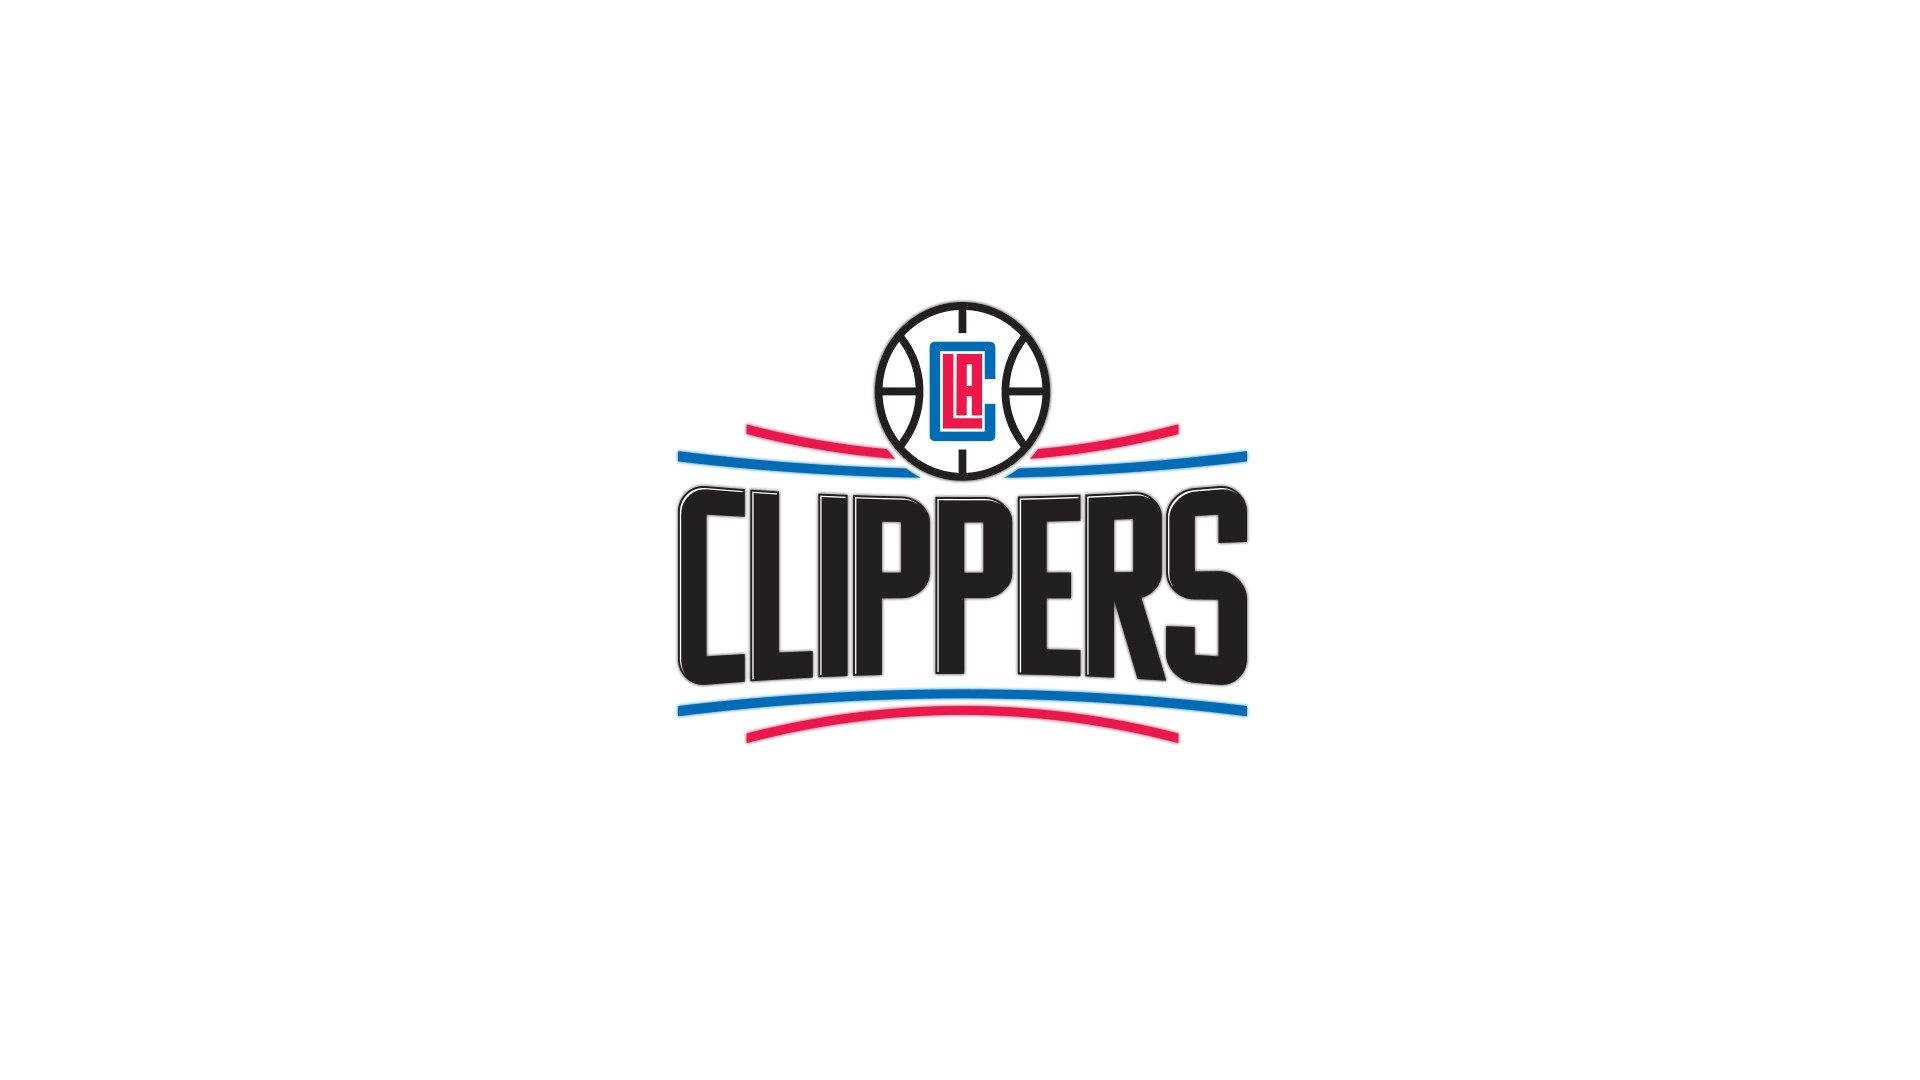 1920x1080 Losangeles Clippers Logo Wallpapers Download Free | PixelsTalk.Net